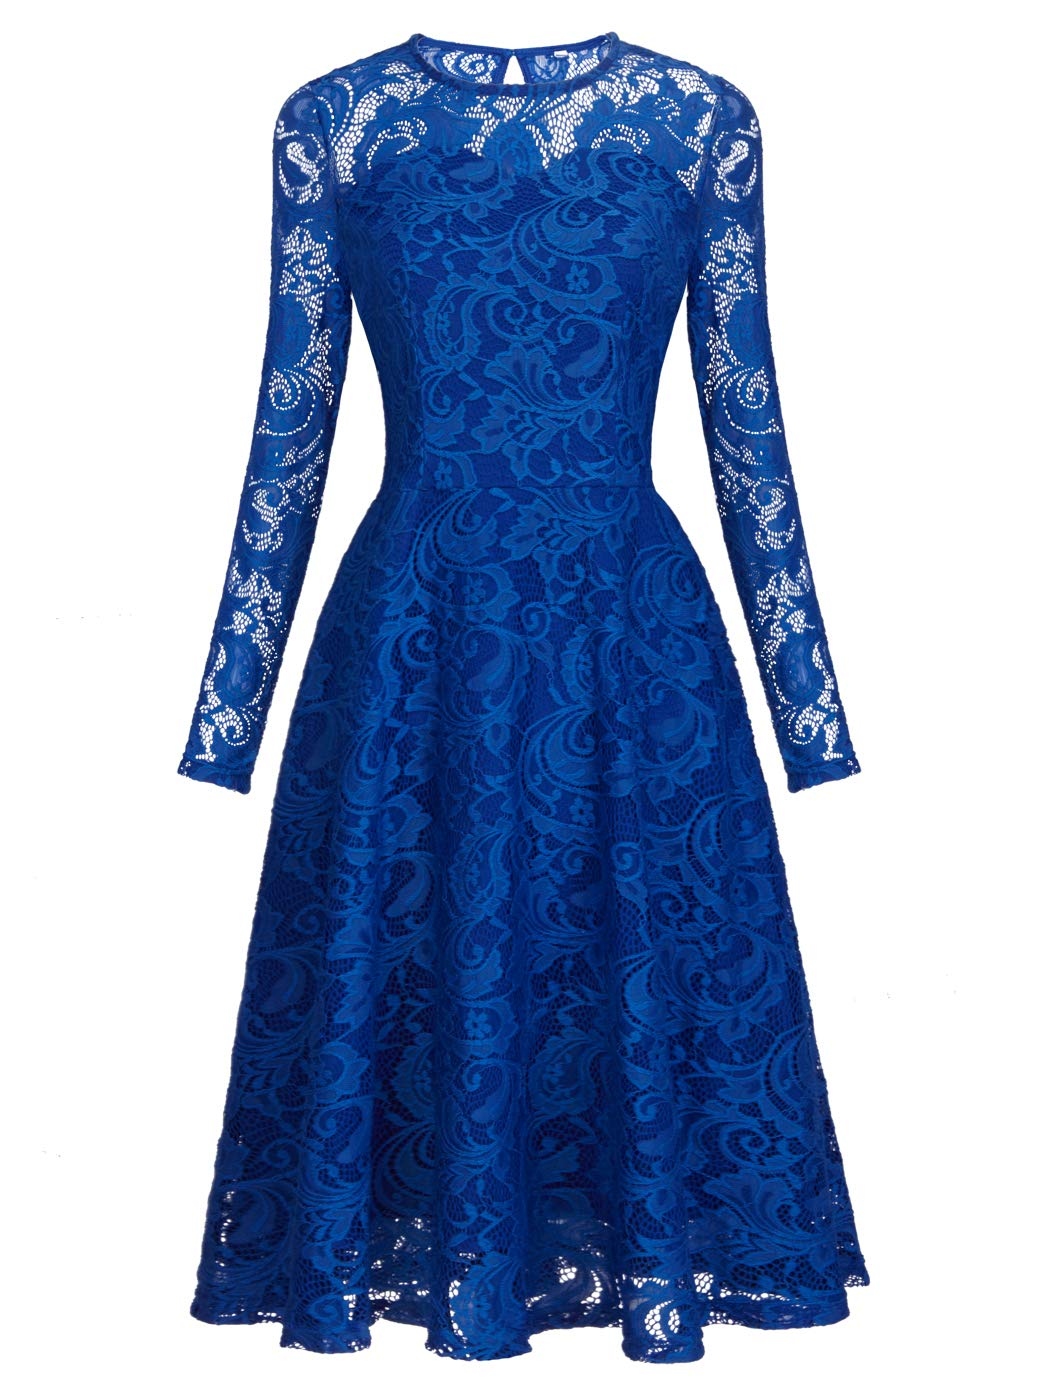 Available at Amazon: FAIRY COUPLE Women's Vintage Floral Lace Long Sleeve Formal Bridesmaid Swing Dress